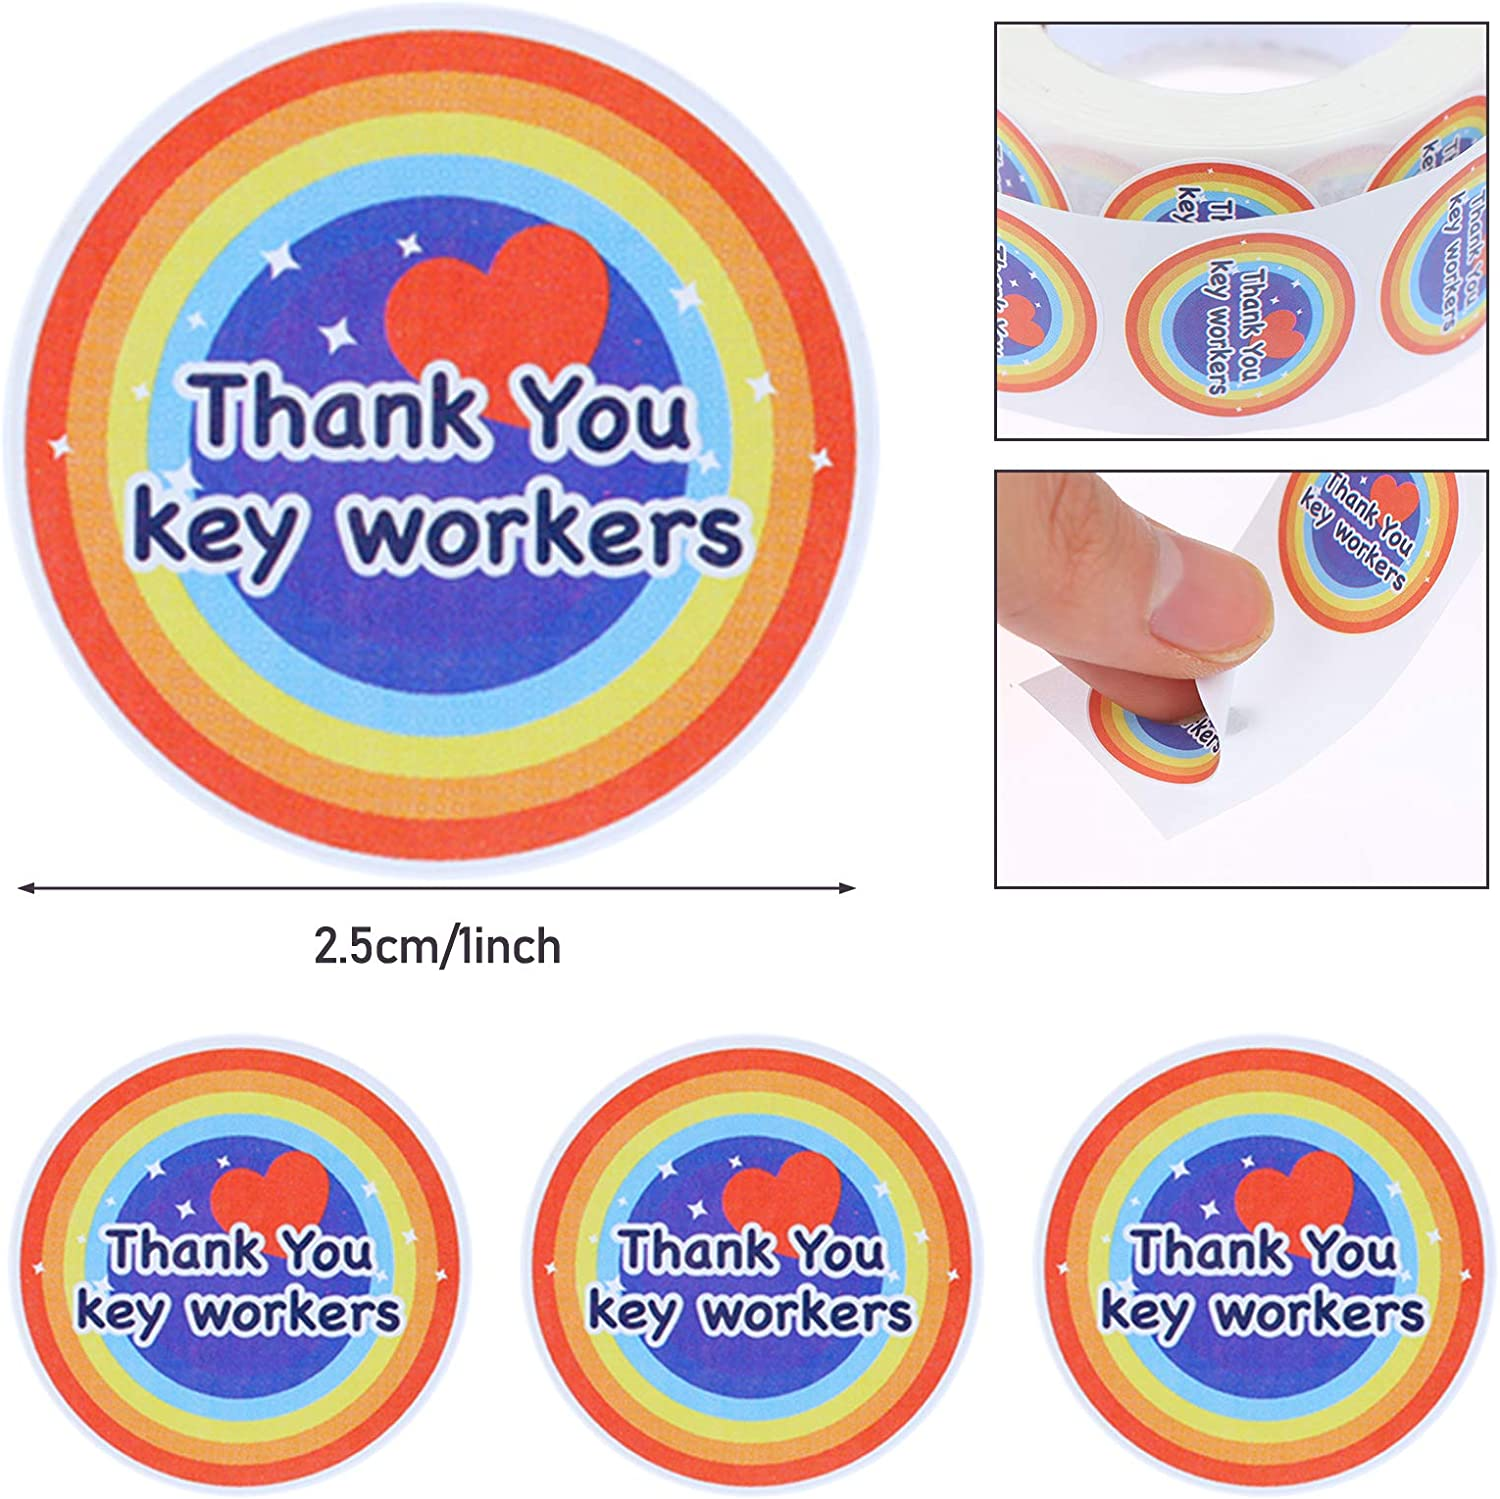 1000 Valentines Day Stickers Thank You Key Workers Label Stickers Rainbow Stickers Heart Shaped Stickers for Valentines Day Decoration Party Accessories